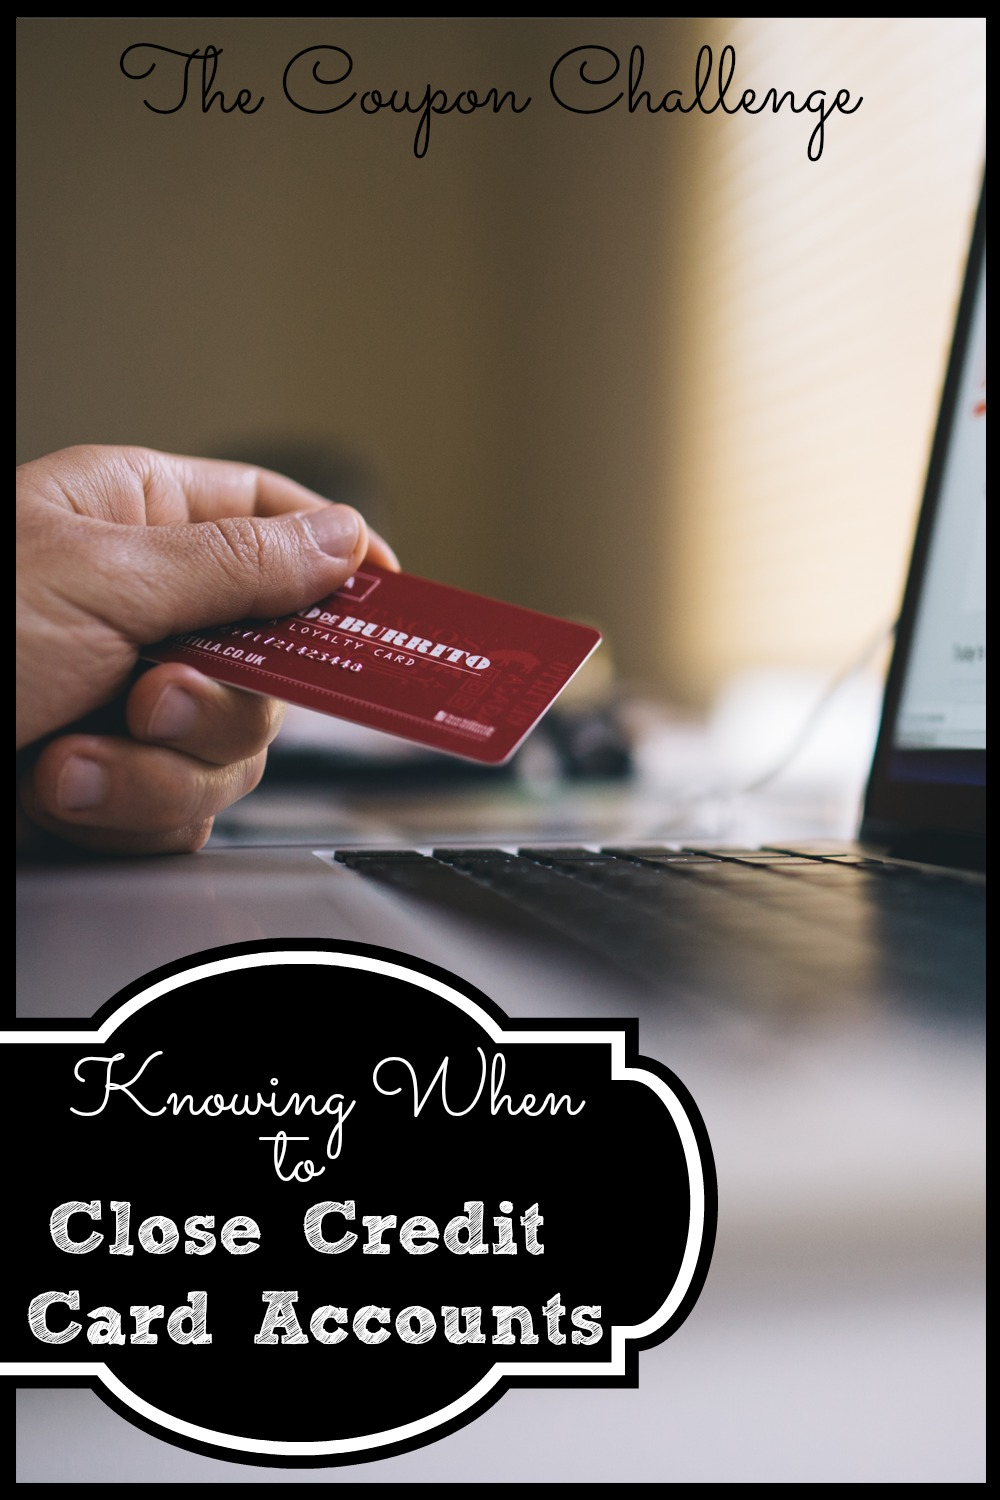 Knowing-When-To-Close-Credit-Card-Accounts